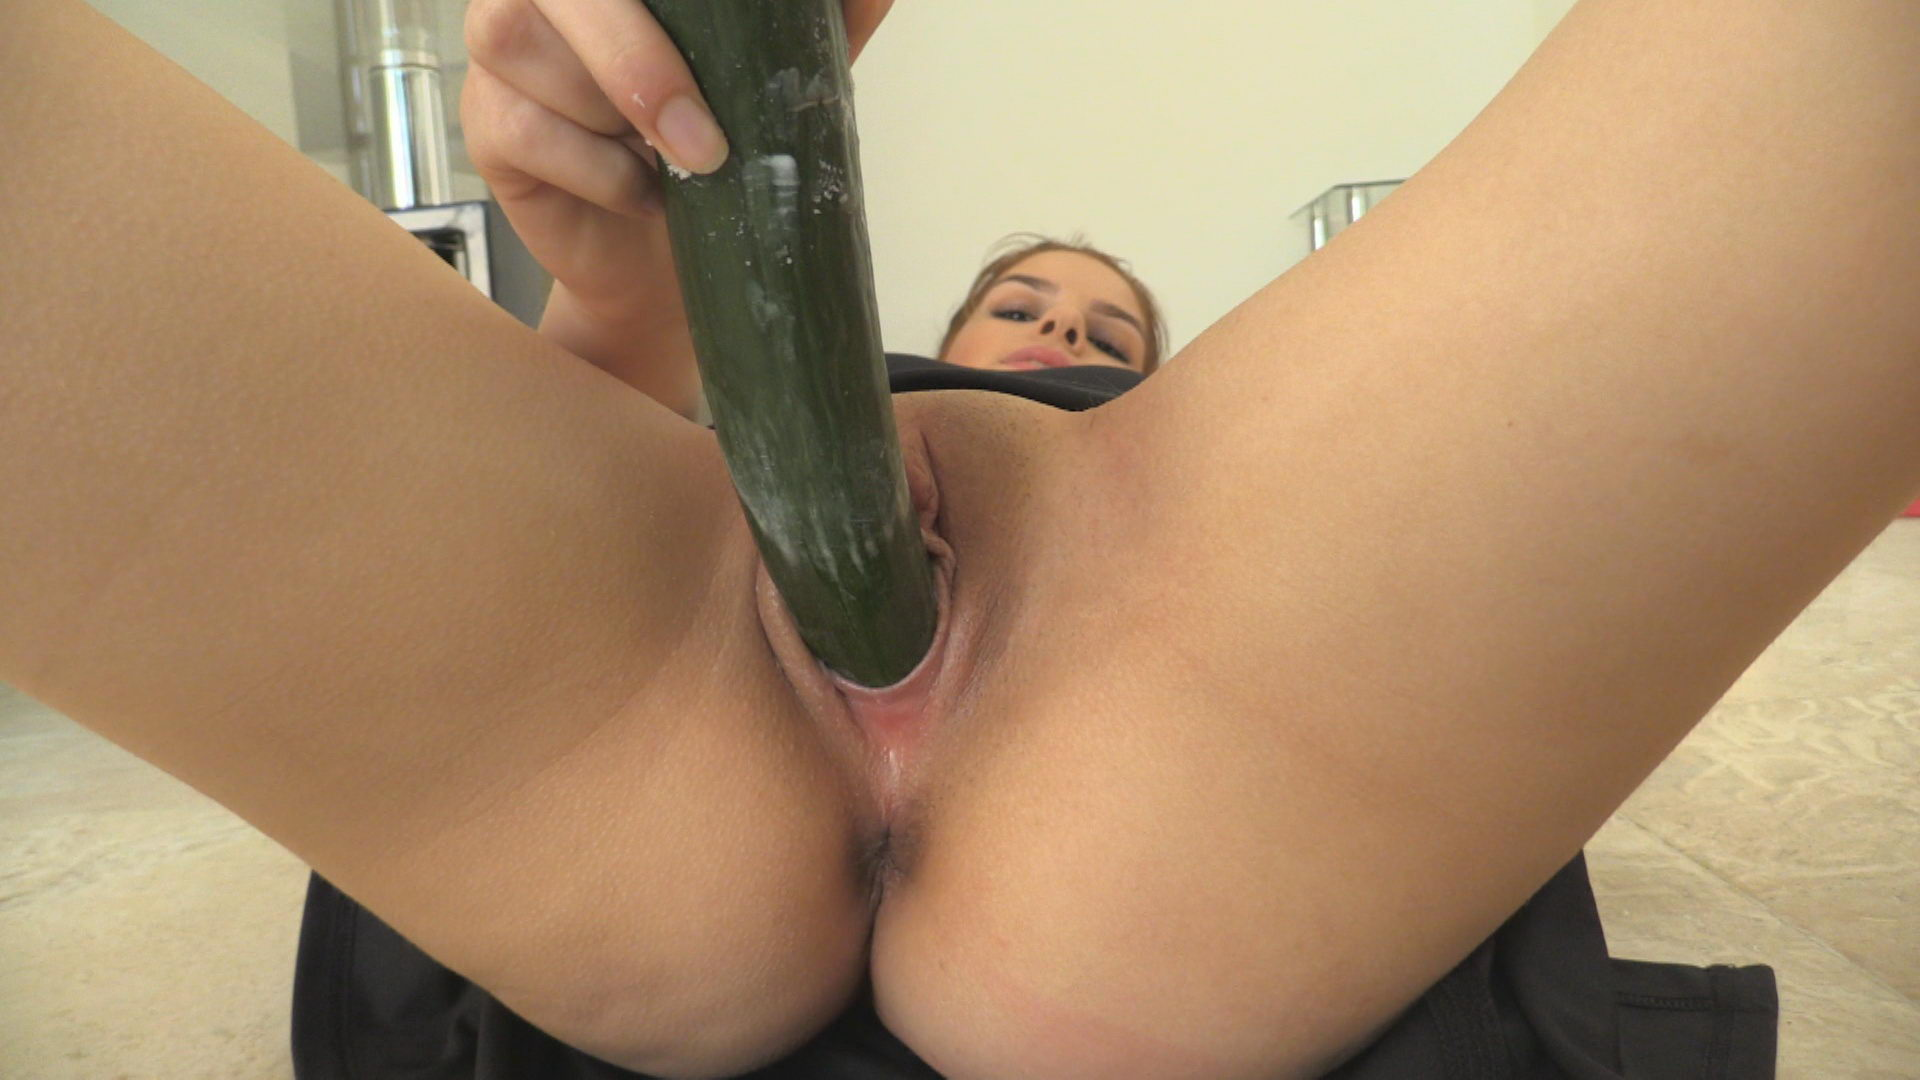 Cucumber in Pussy of Young Girl